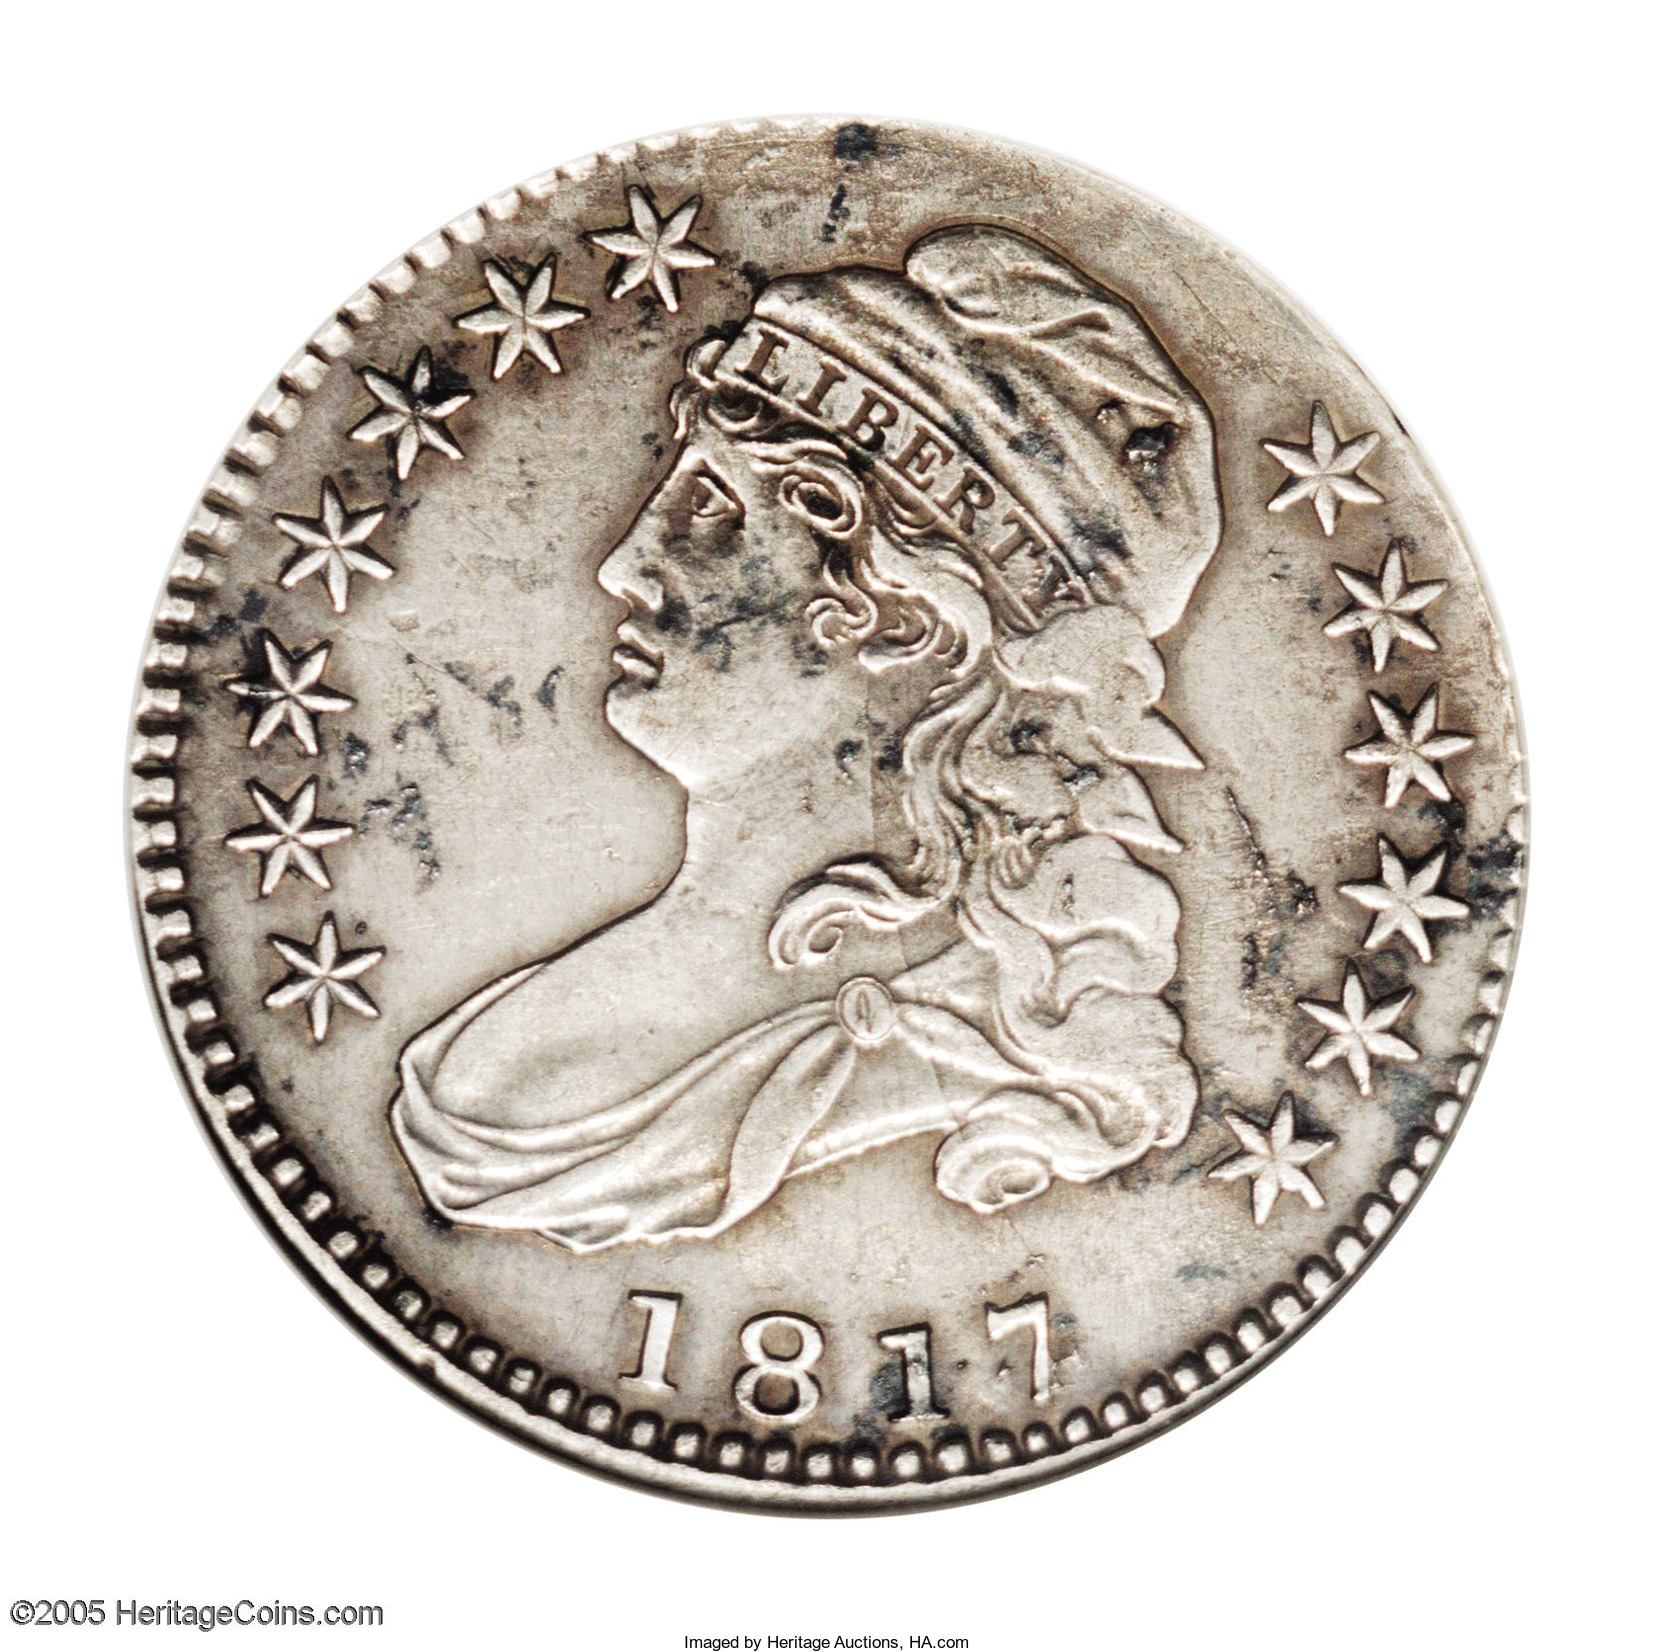 This eighth known specimen of the ultra-rare 1817/4 half dollar was found in a load of fill dirt.